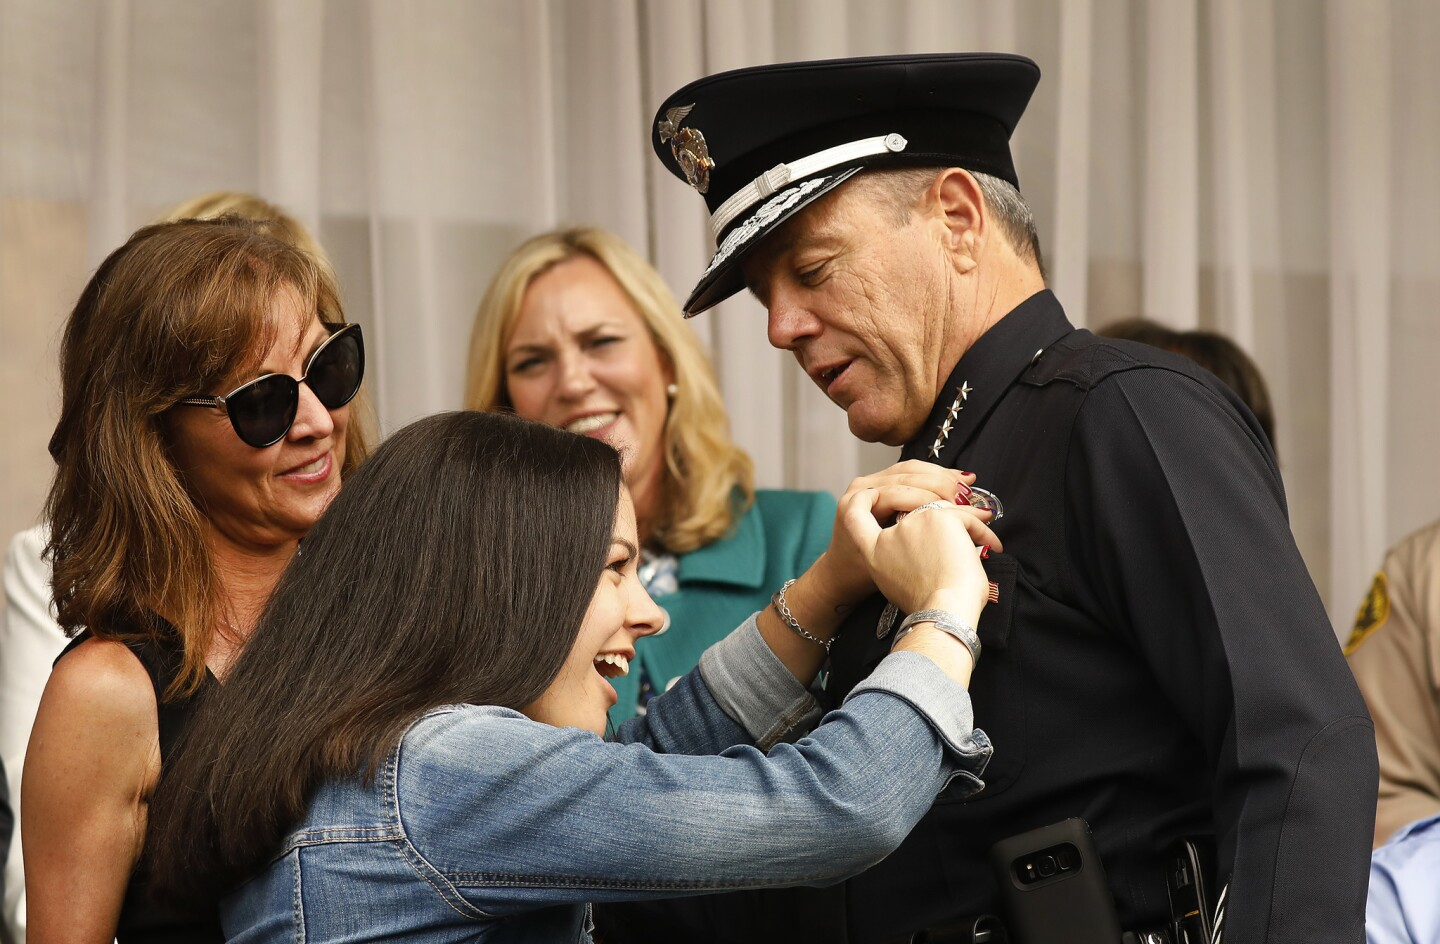 Haley Moore, 18, daughter of the new LAPD Chief Michel Moore, places his new badge as his wife, Cindy Moore, left, watches at the swearing-in ceremony of Los Angeles' 57th police chief.